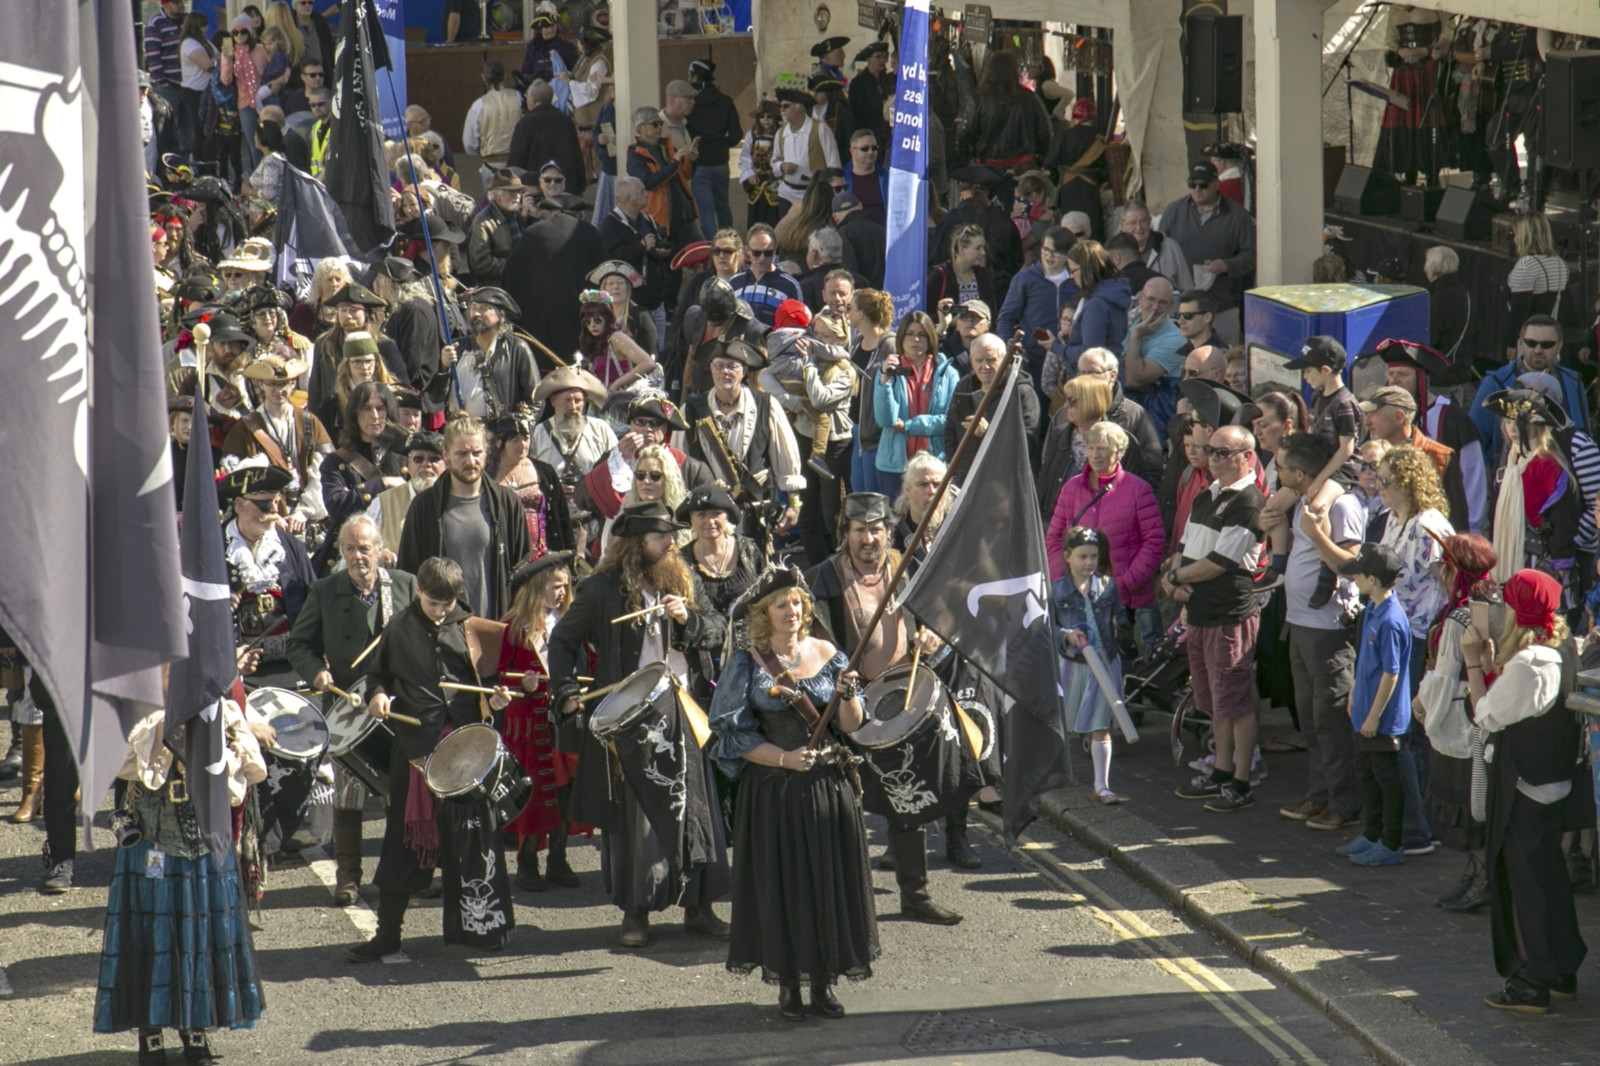 Brixham Pirate Festival 2019 Photos